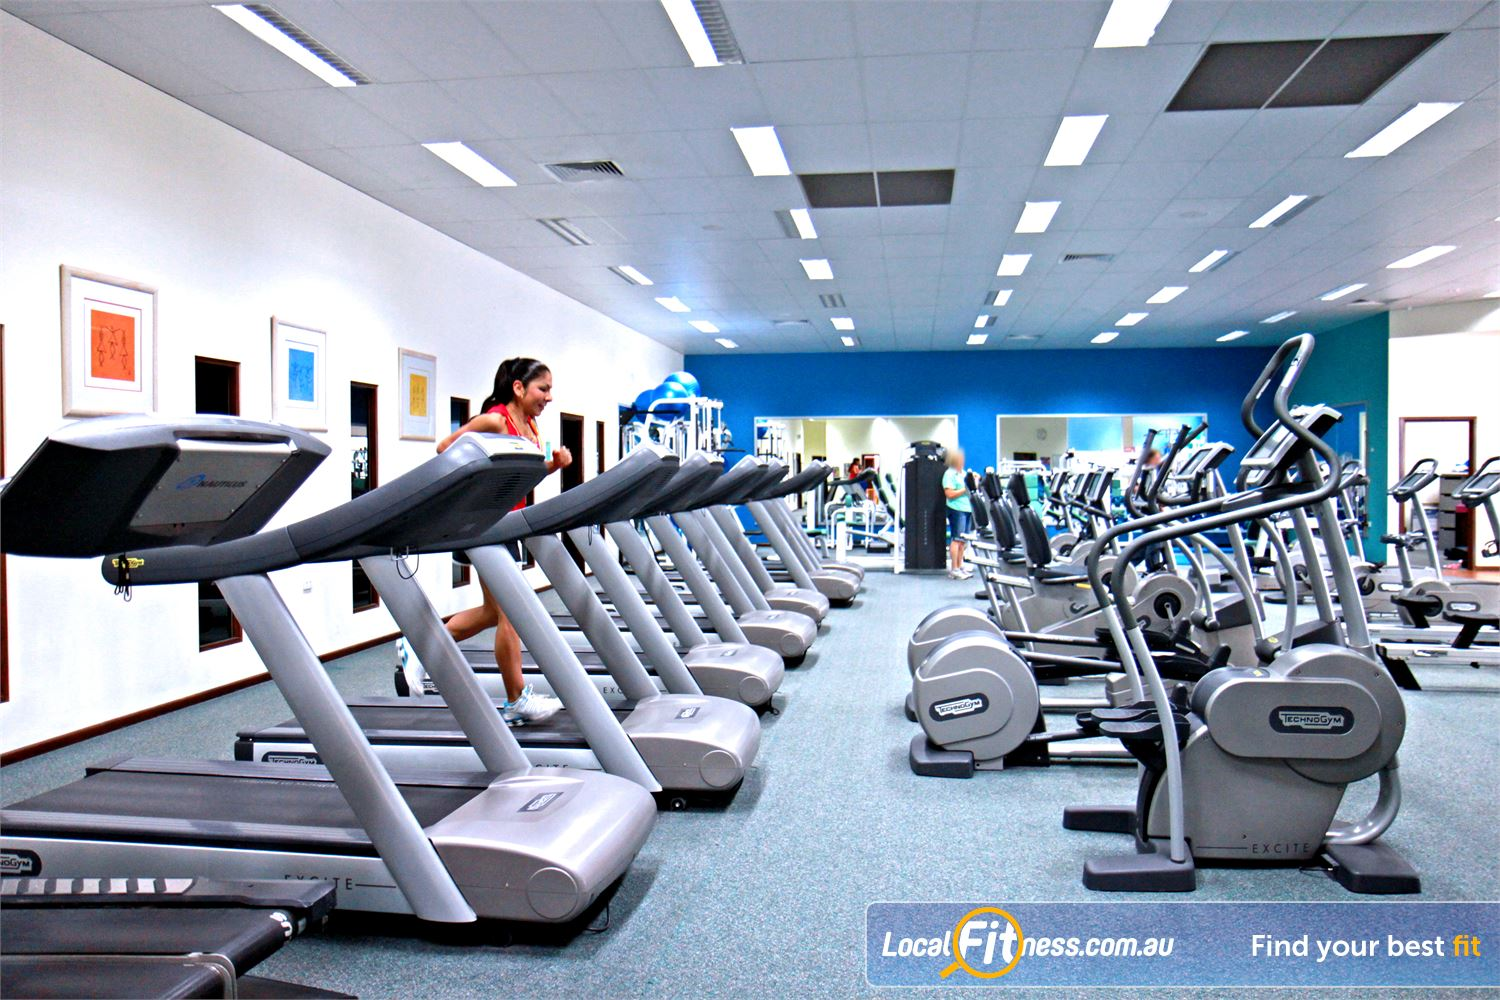 Fernwood Fitness Near Slacks Creek Luxury training with personal entertainment units on our machine.